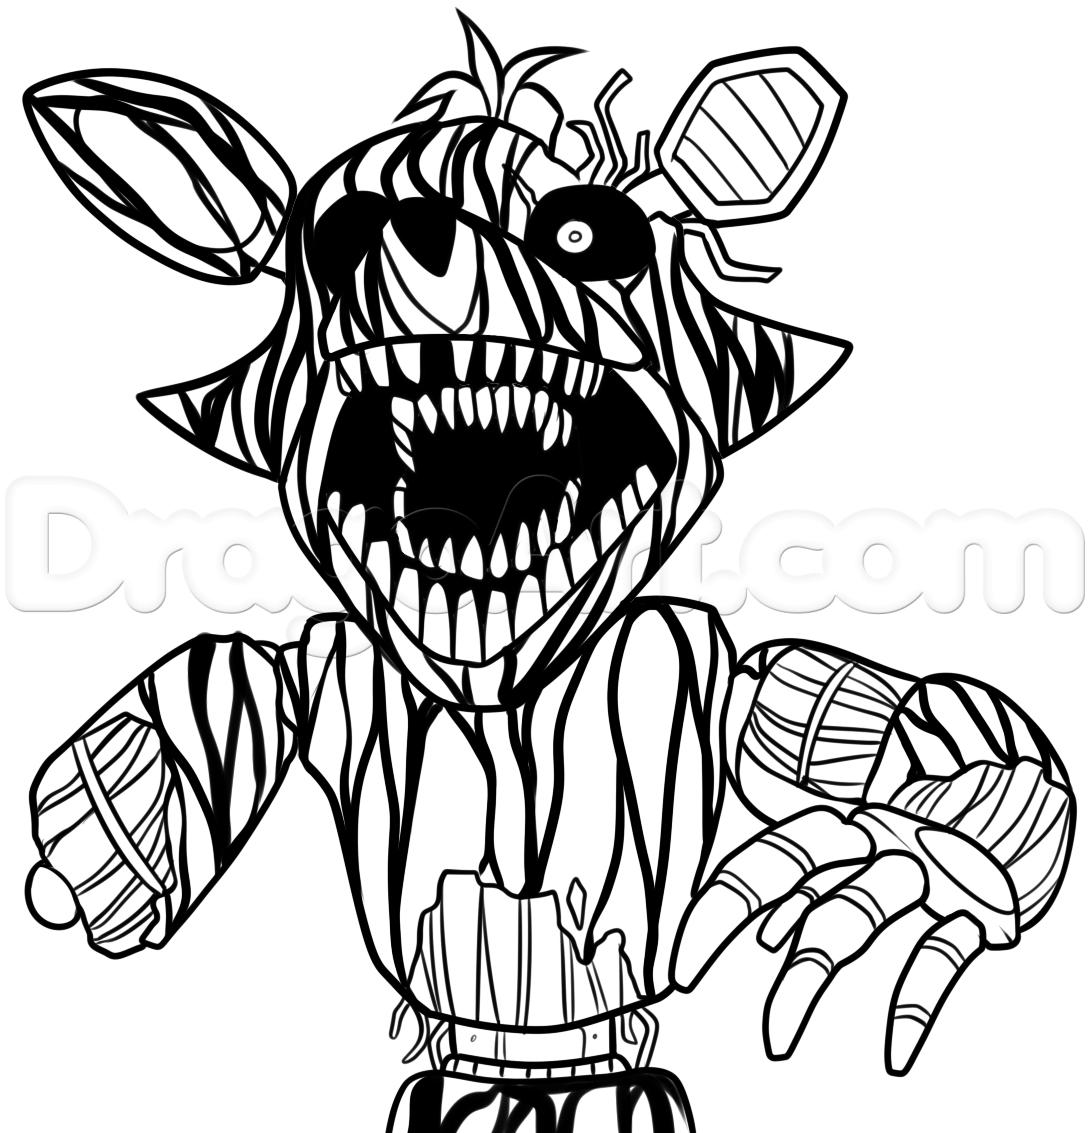 1090x1133 Cool How To Draw Phantom Foxy From Five Nights